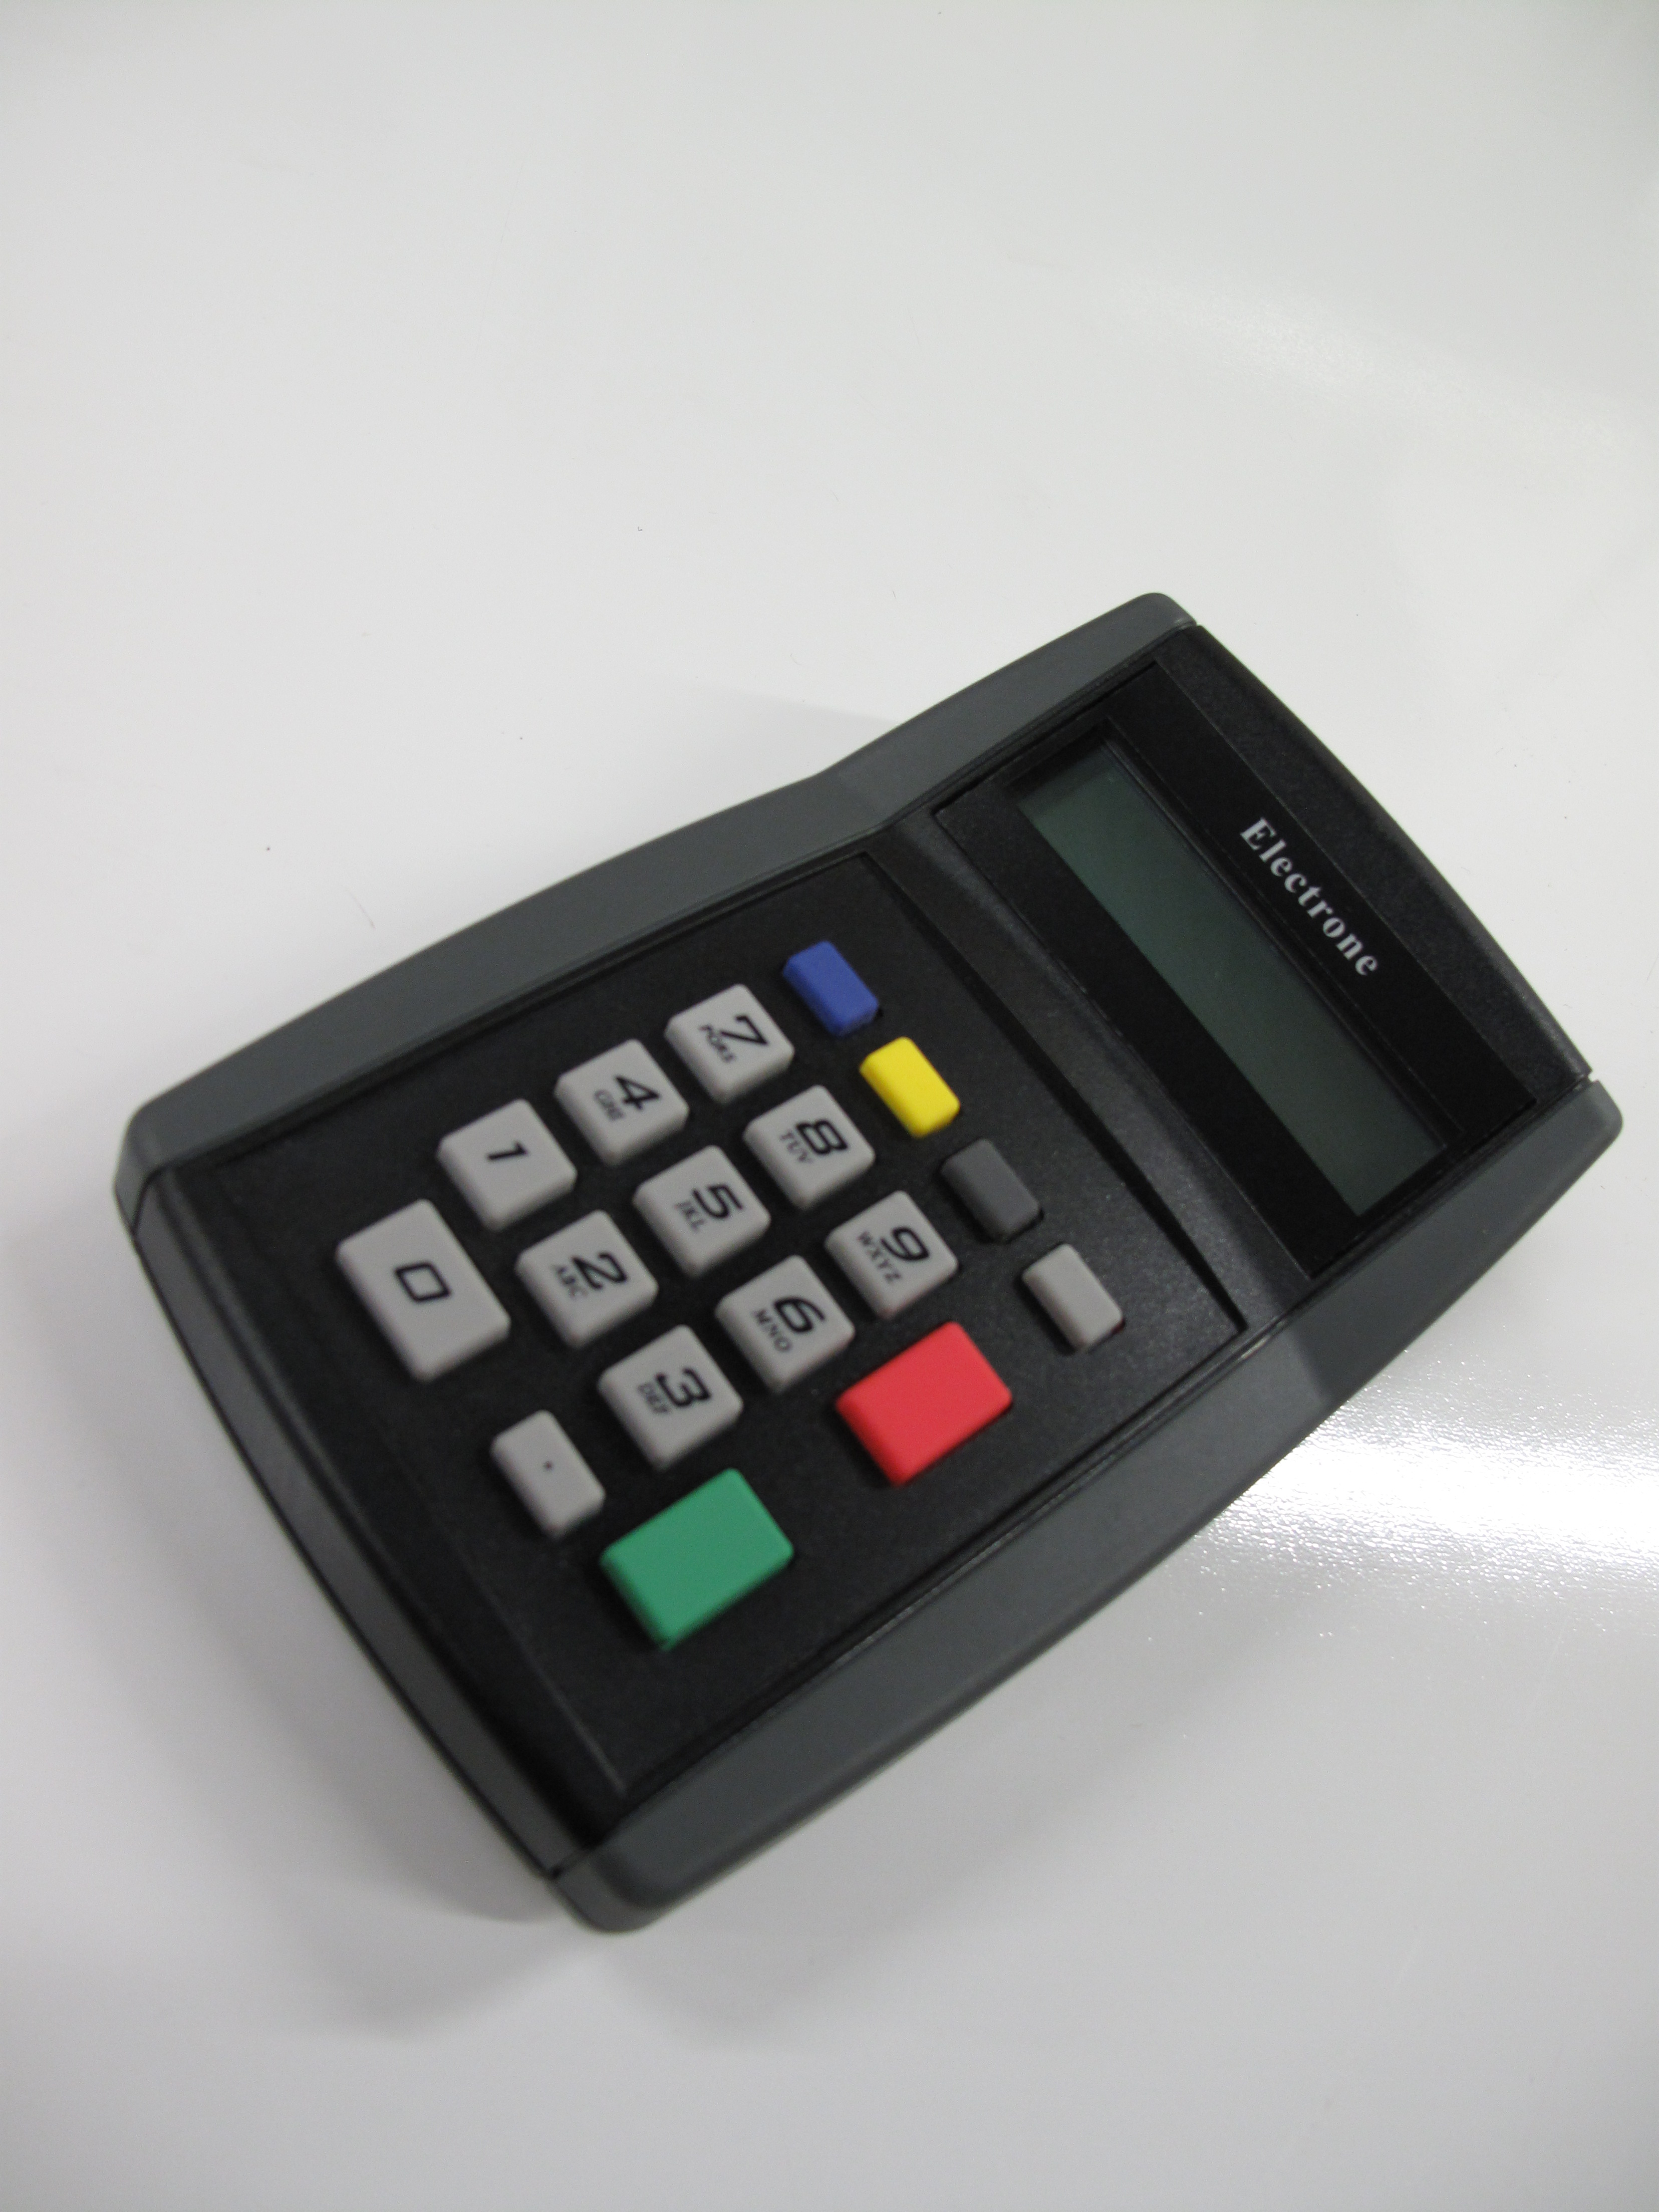 Solutions, Solutions, Solutions: Available connections for the Electrone 735 keypad with display – TCP/IP – PoE; USB VCP or HID and Serial/RS232